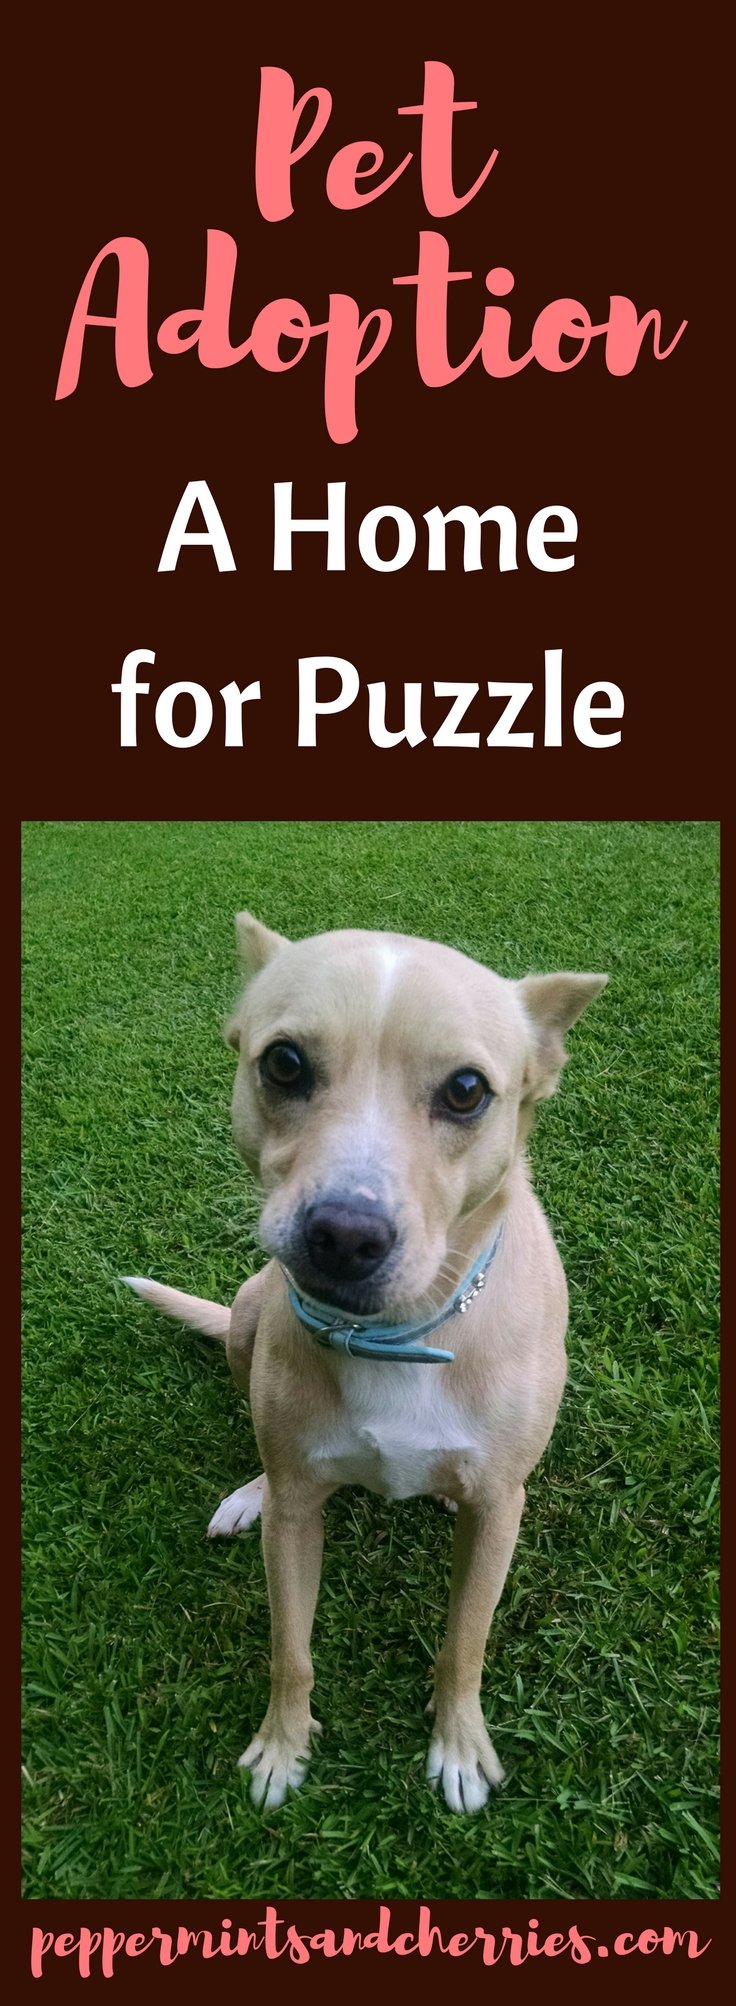 Pet Adoption: A Home for Puzzle